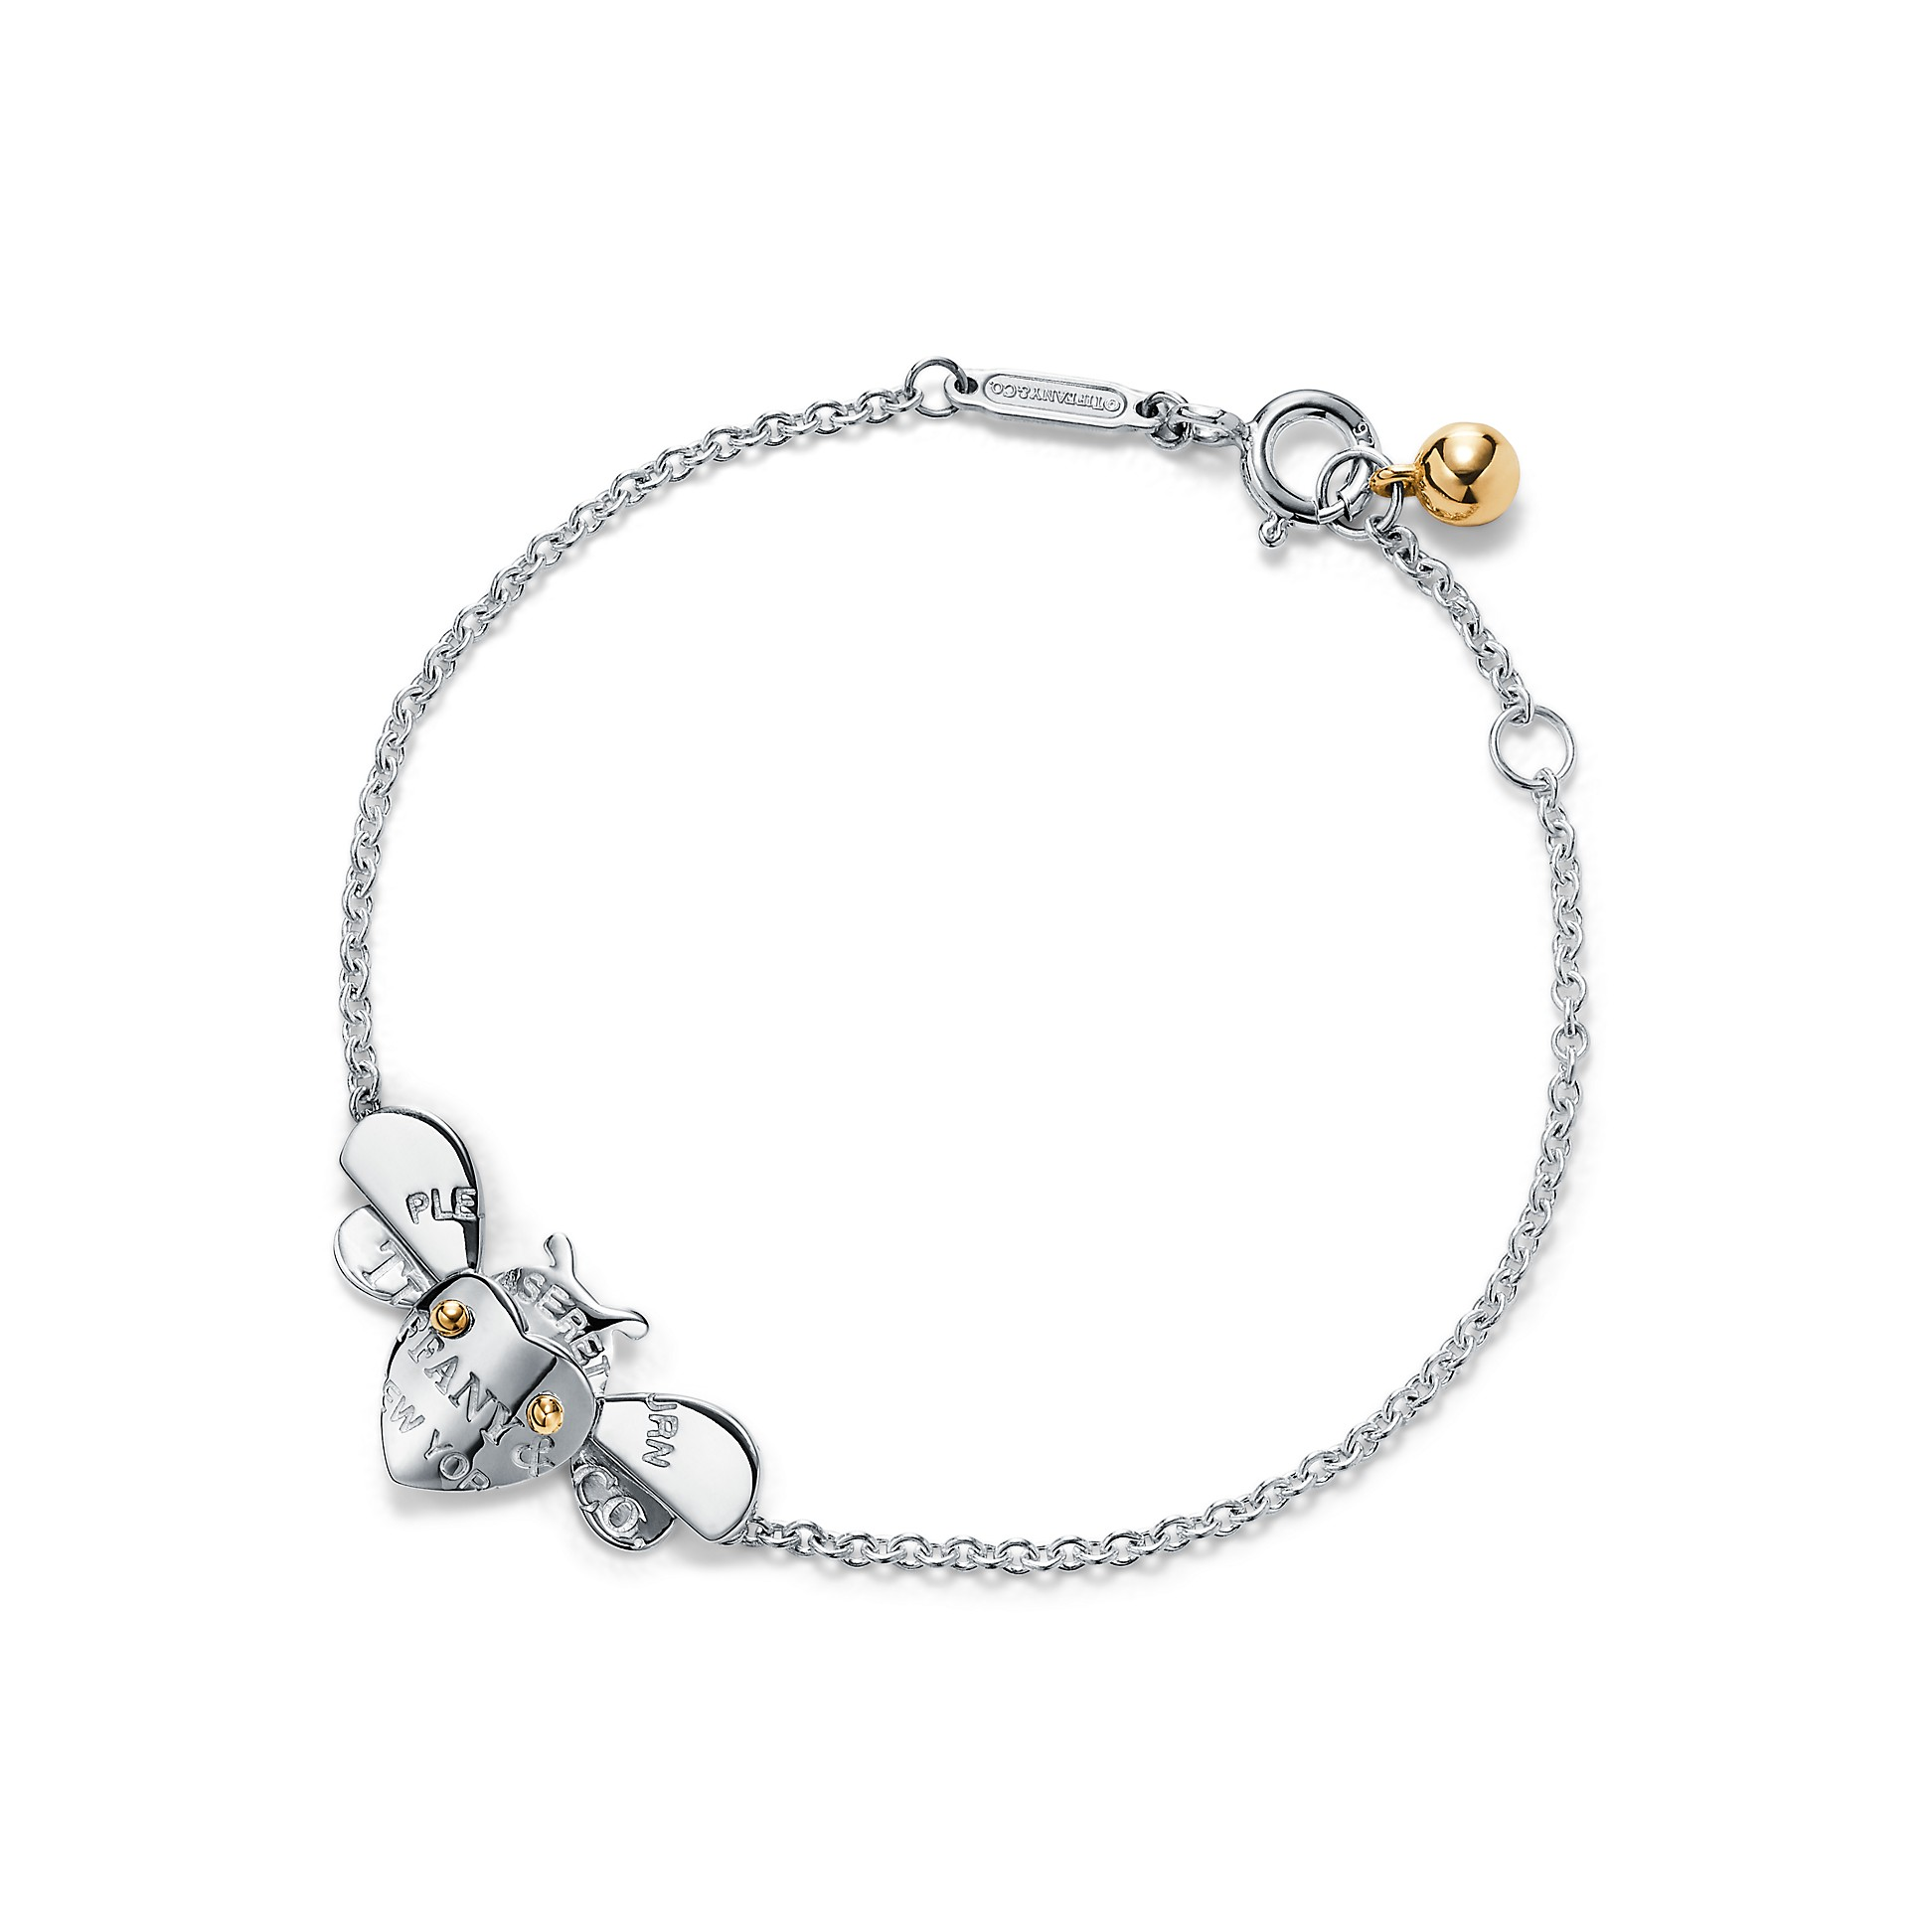 Return To Tiffany® Love Bugs        Bee Chain Bracelet In Sterling Silver And 18k Gold by Return To Tiffany® Love Bugs